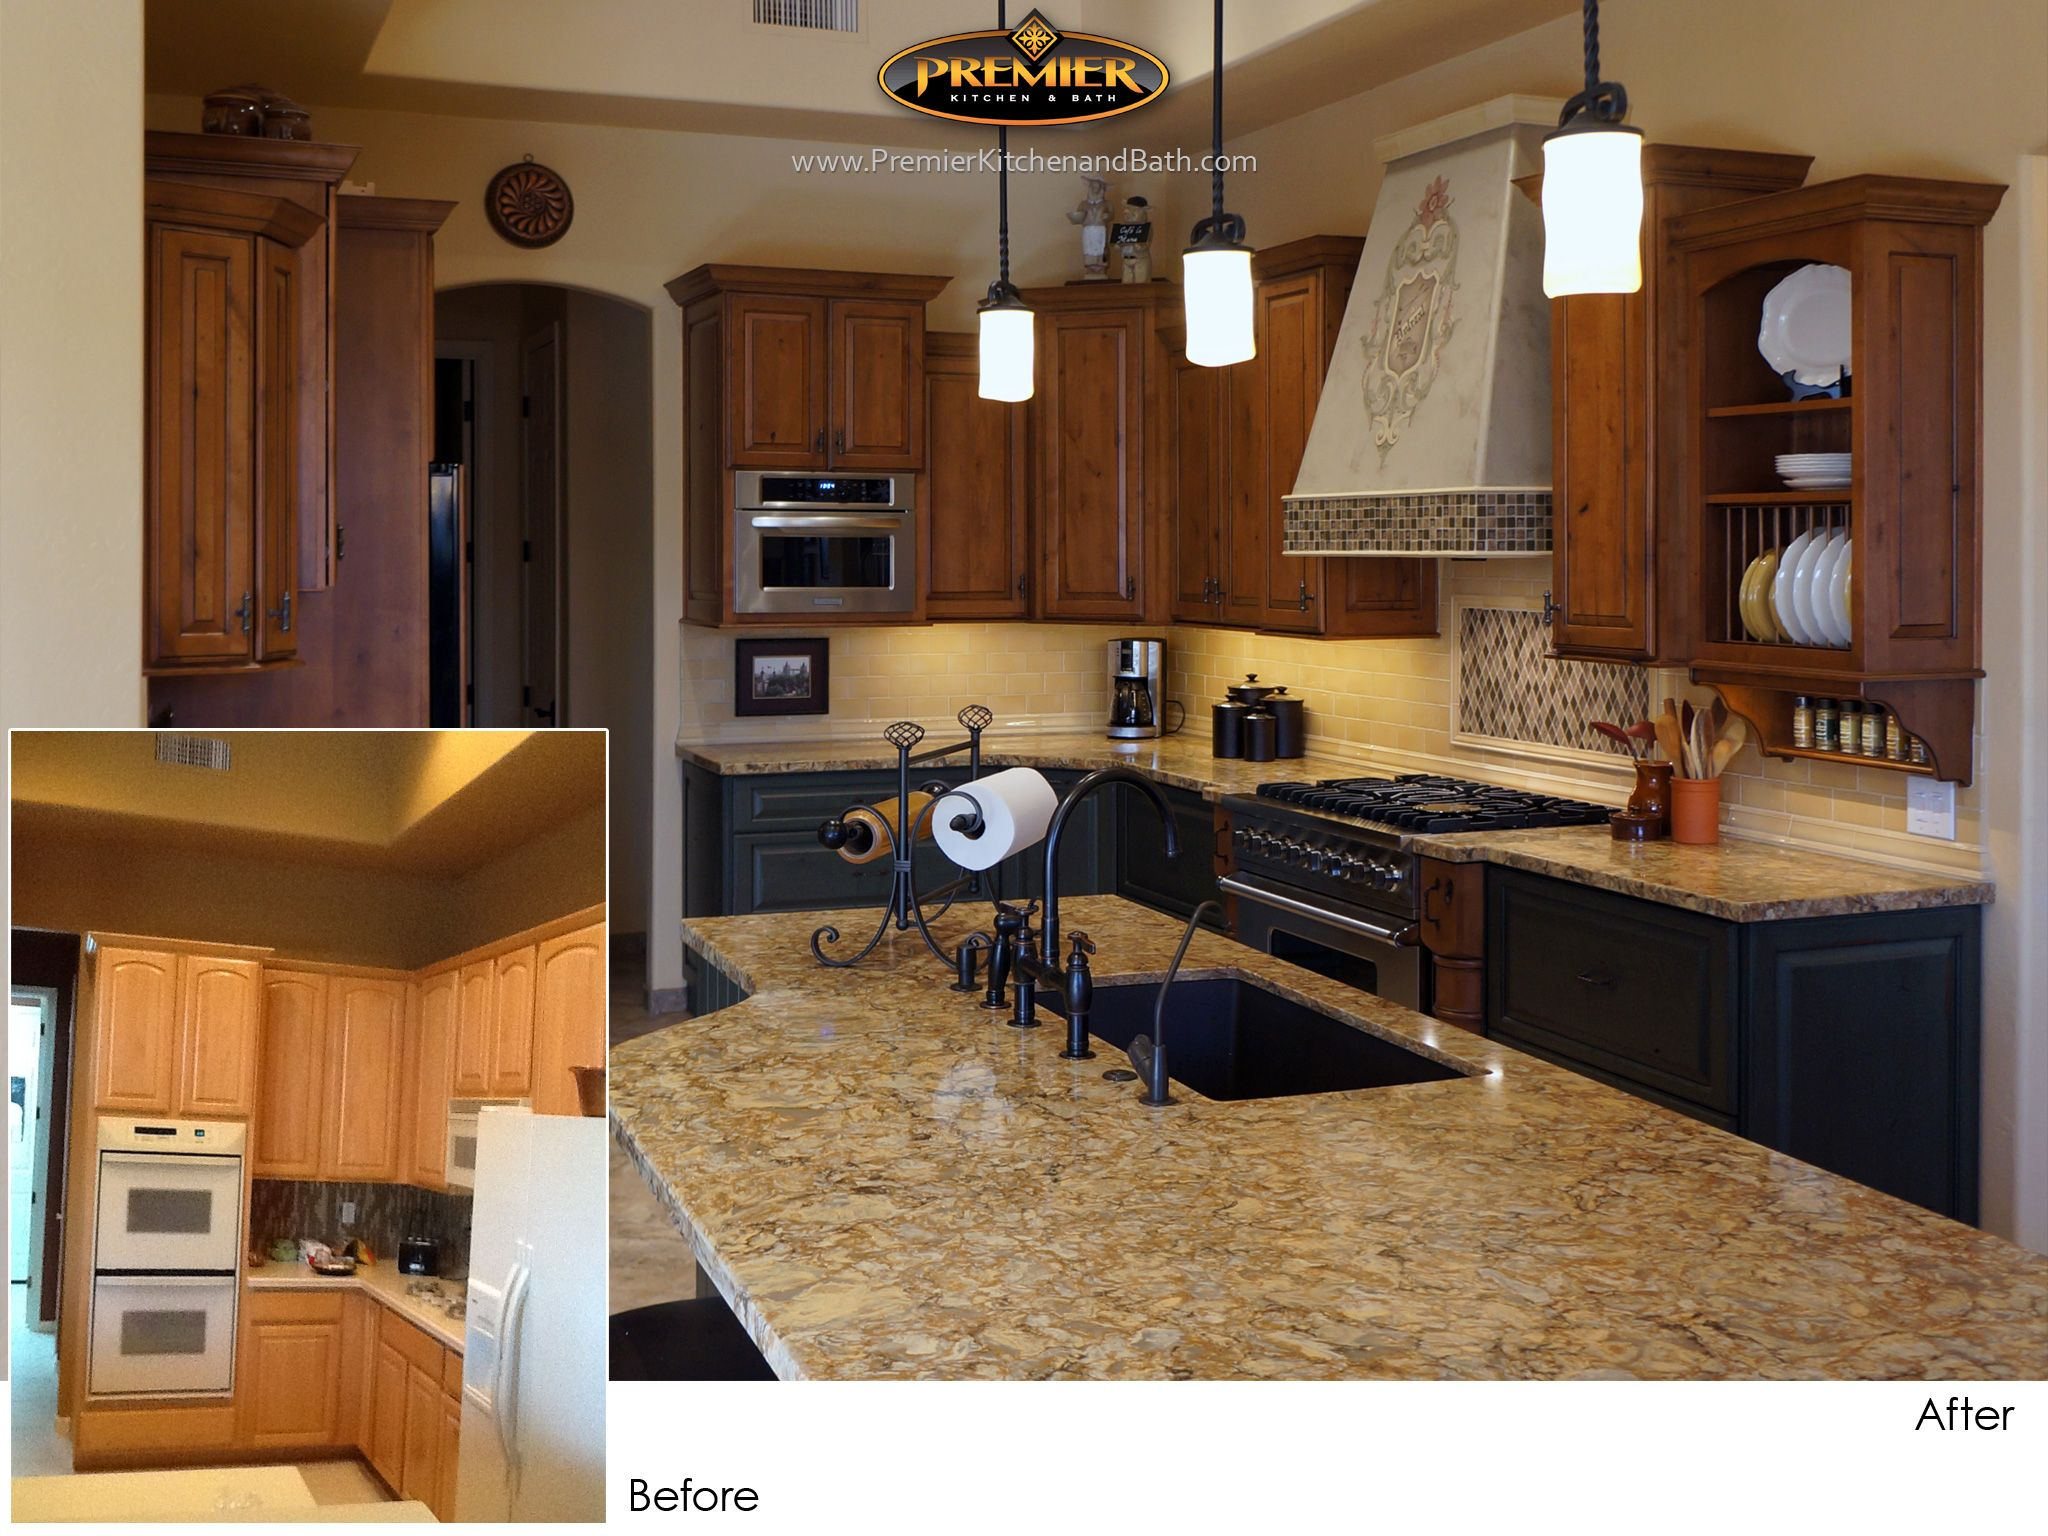 Kitchen Remodeling Services Style Before & After Kitchen Remodel  Your Next Home Remodel Starts .